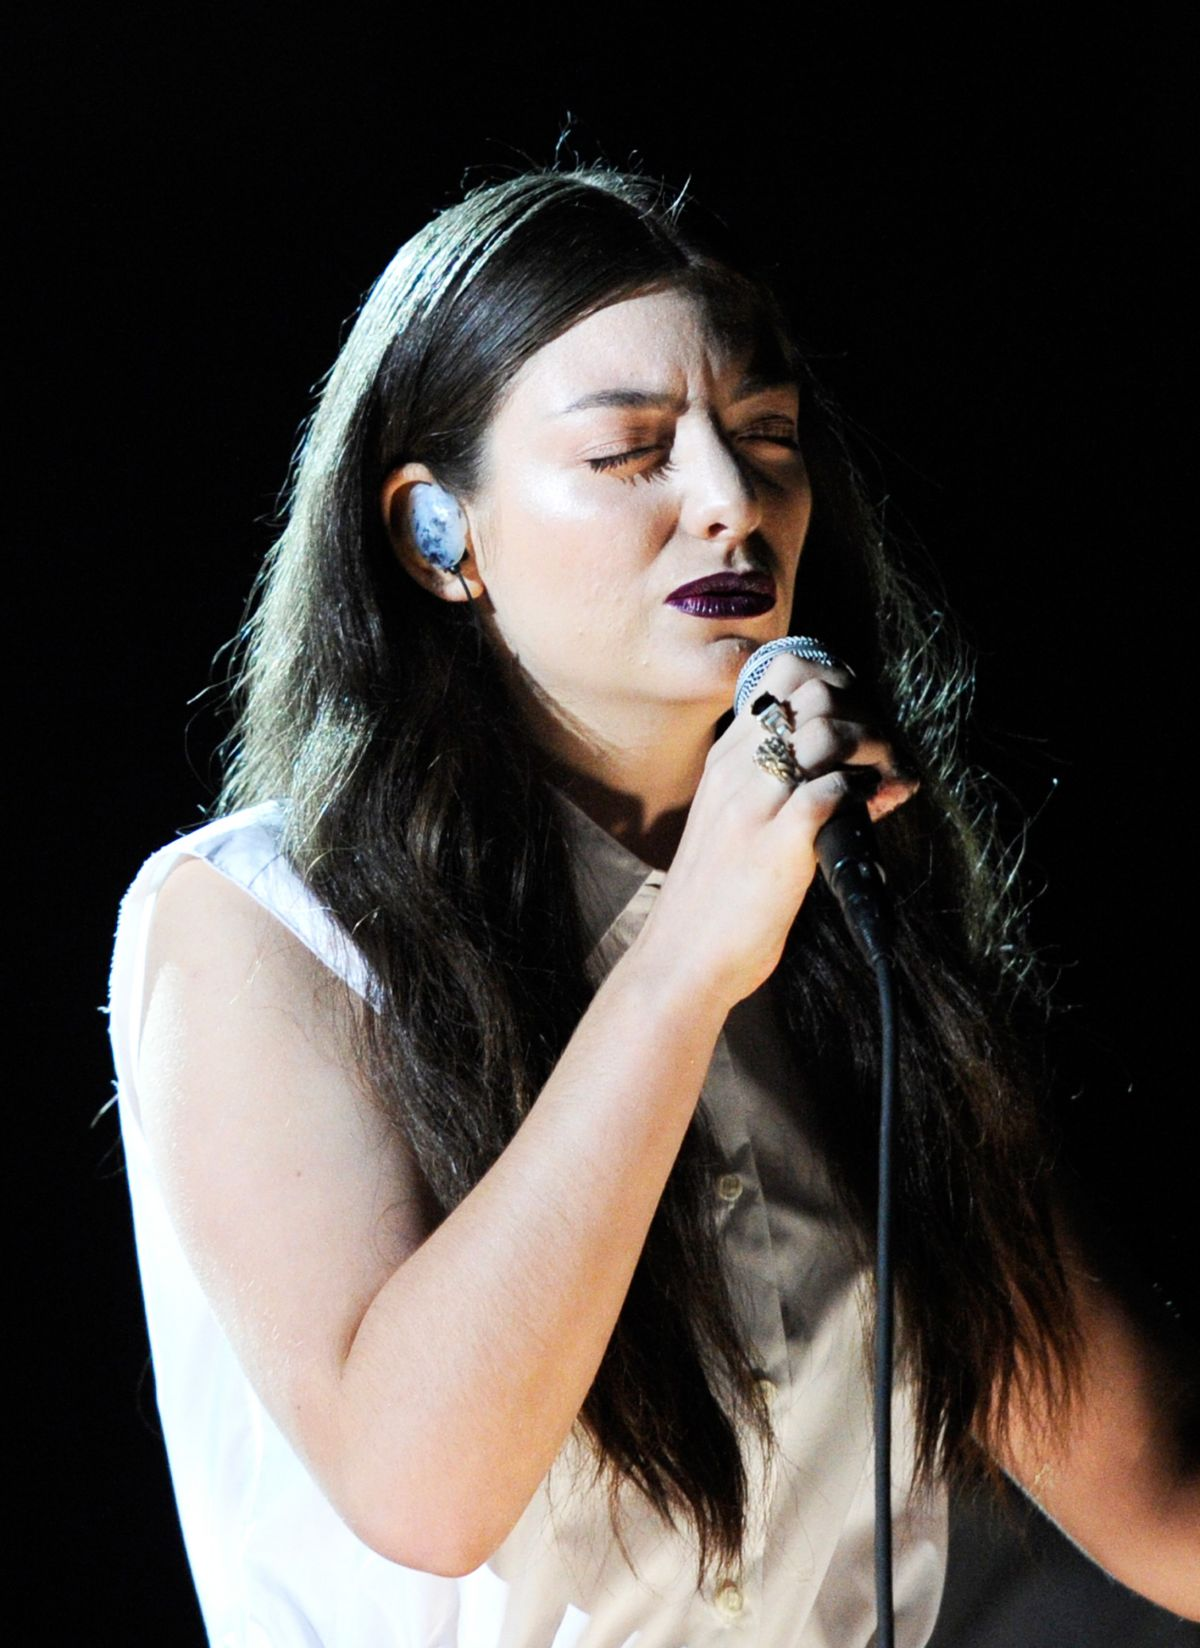 LORDE at 2014 Grammy Awards in Los Angeles - HawtCelebs